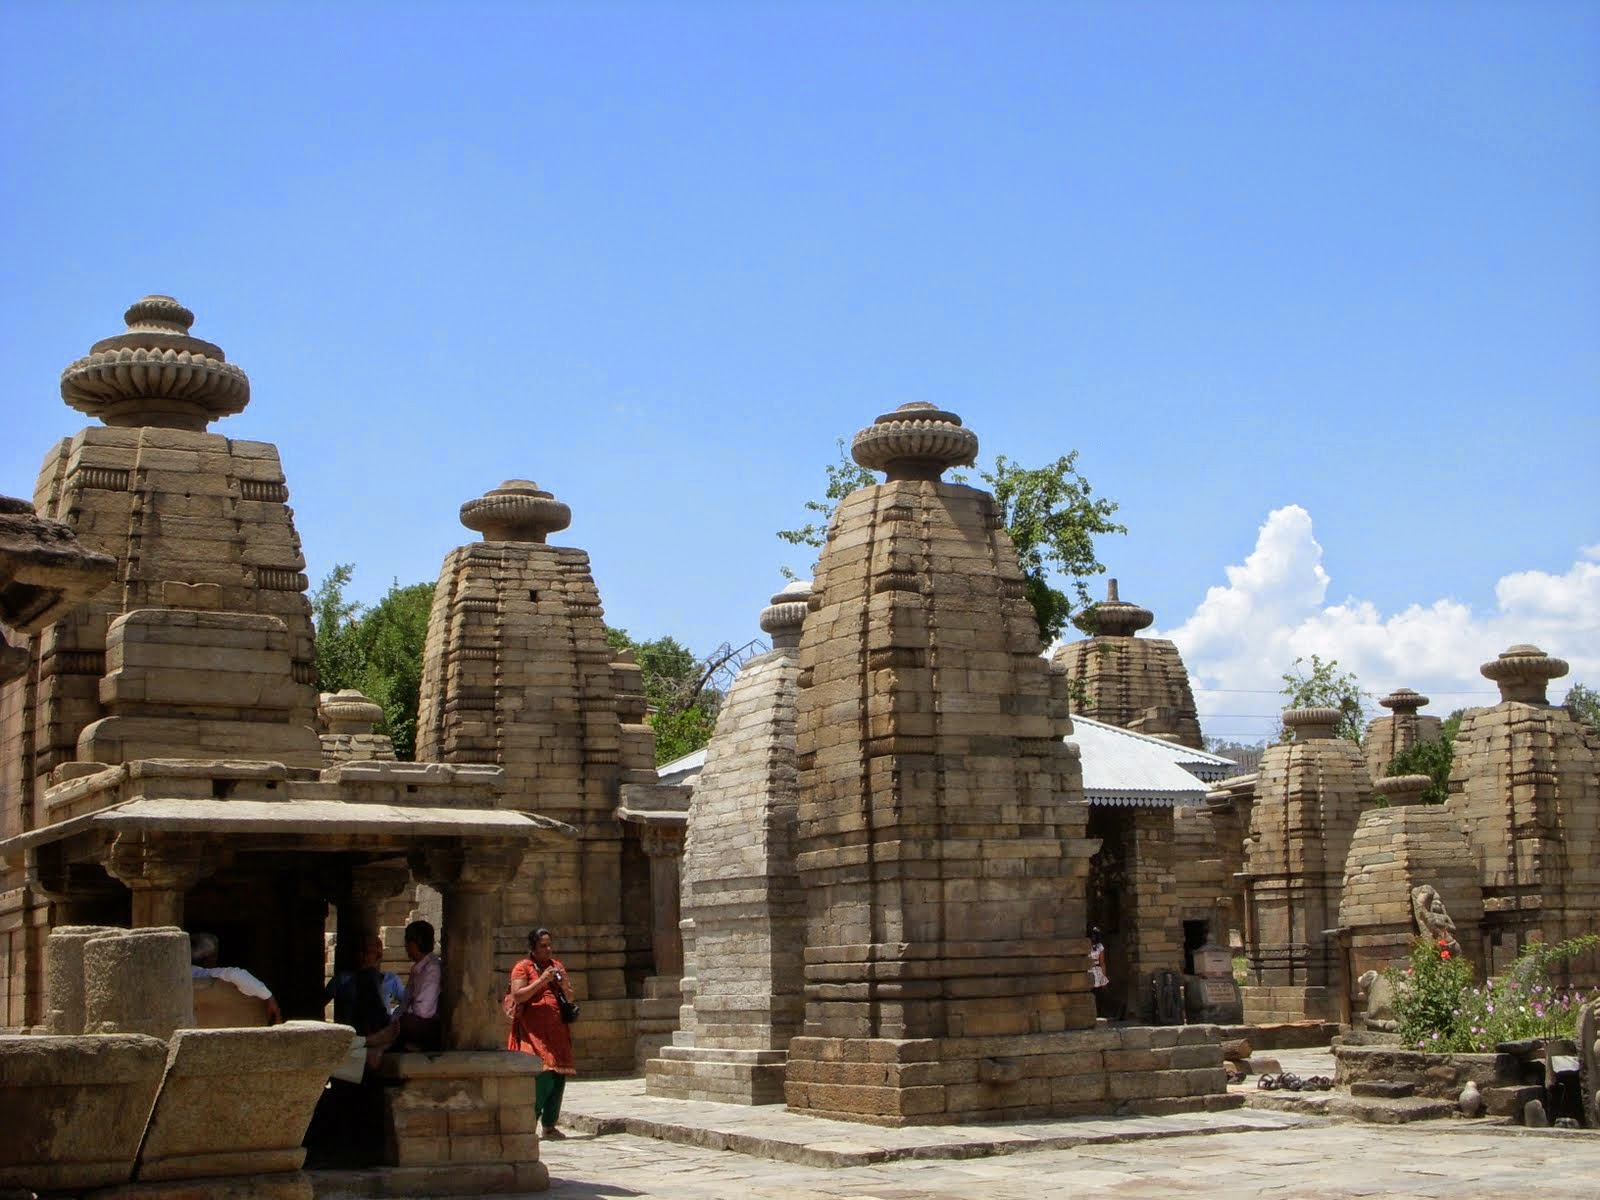 Bagnath temple in Bageshwar